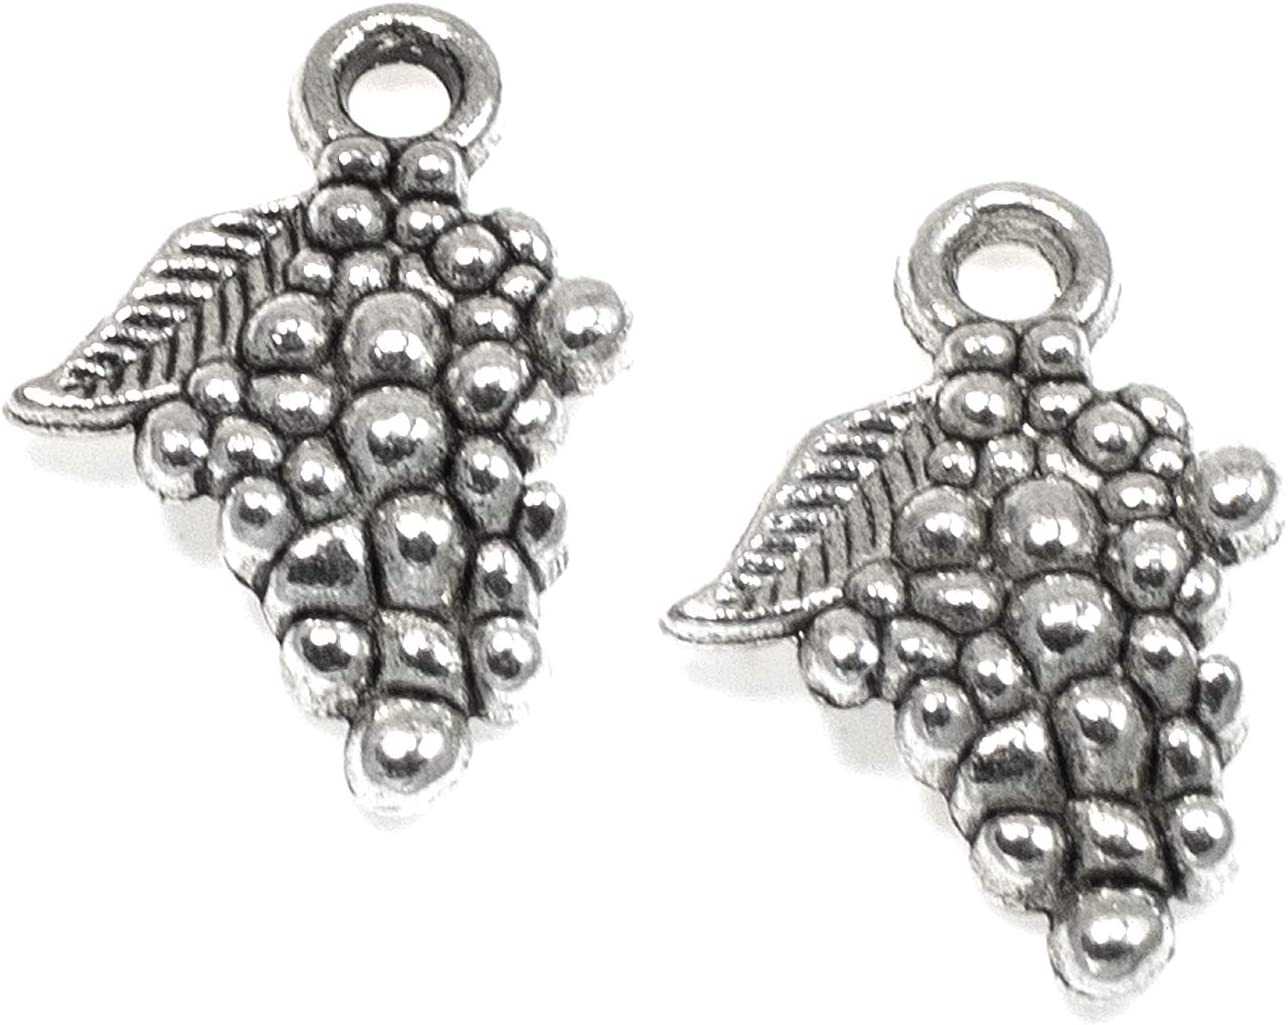 G22680 5 Silver Fruit Charms Antique Silver Plated Charms 20x18mm